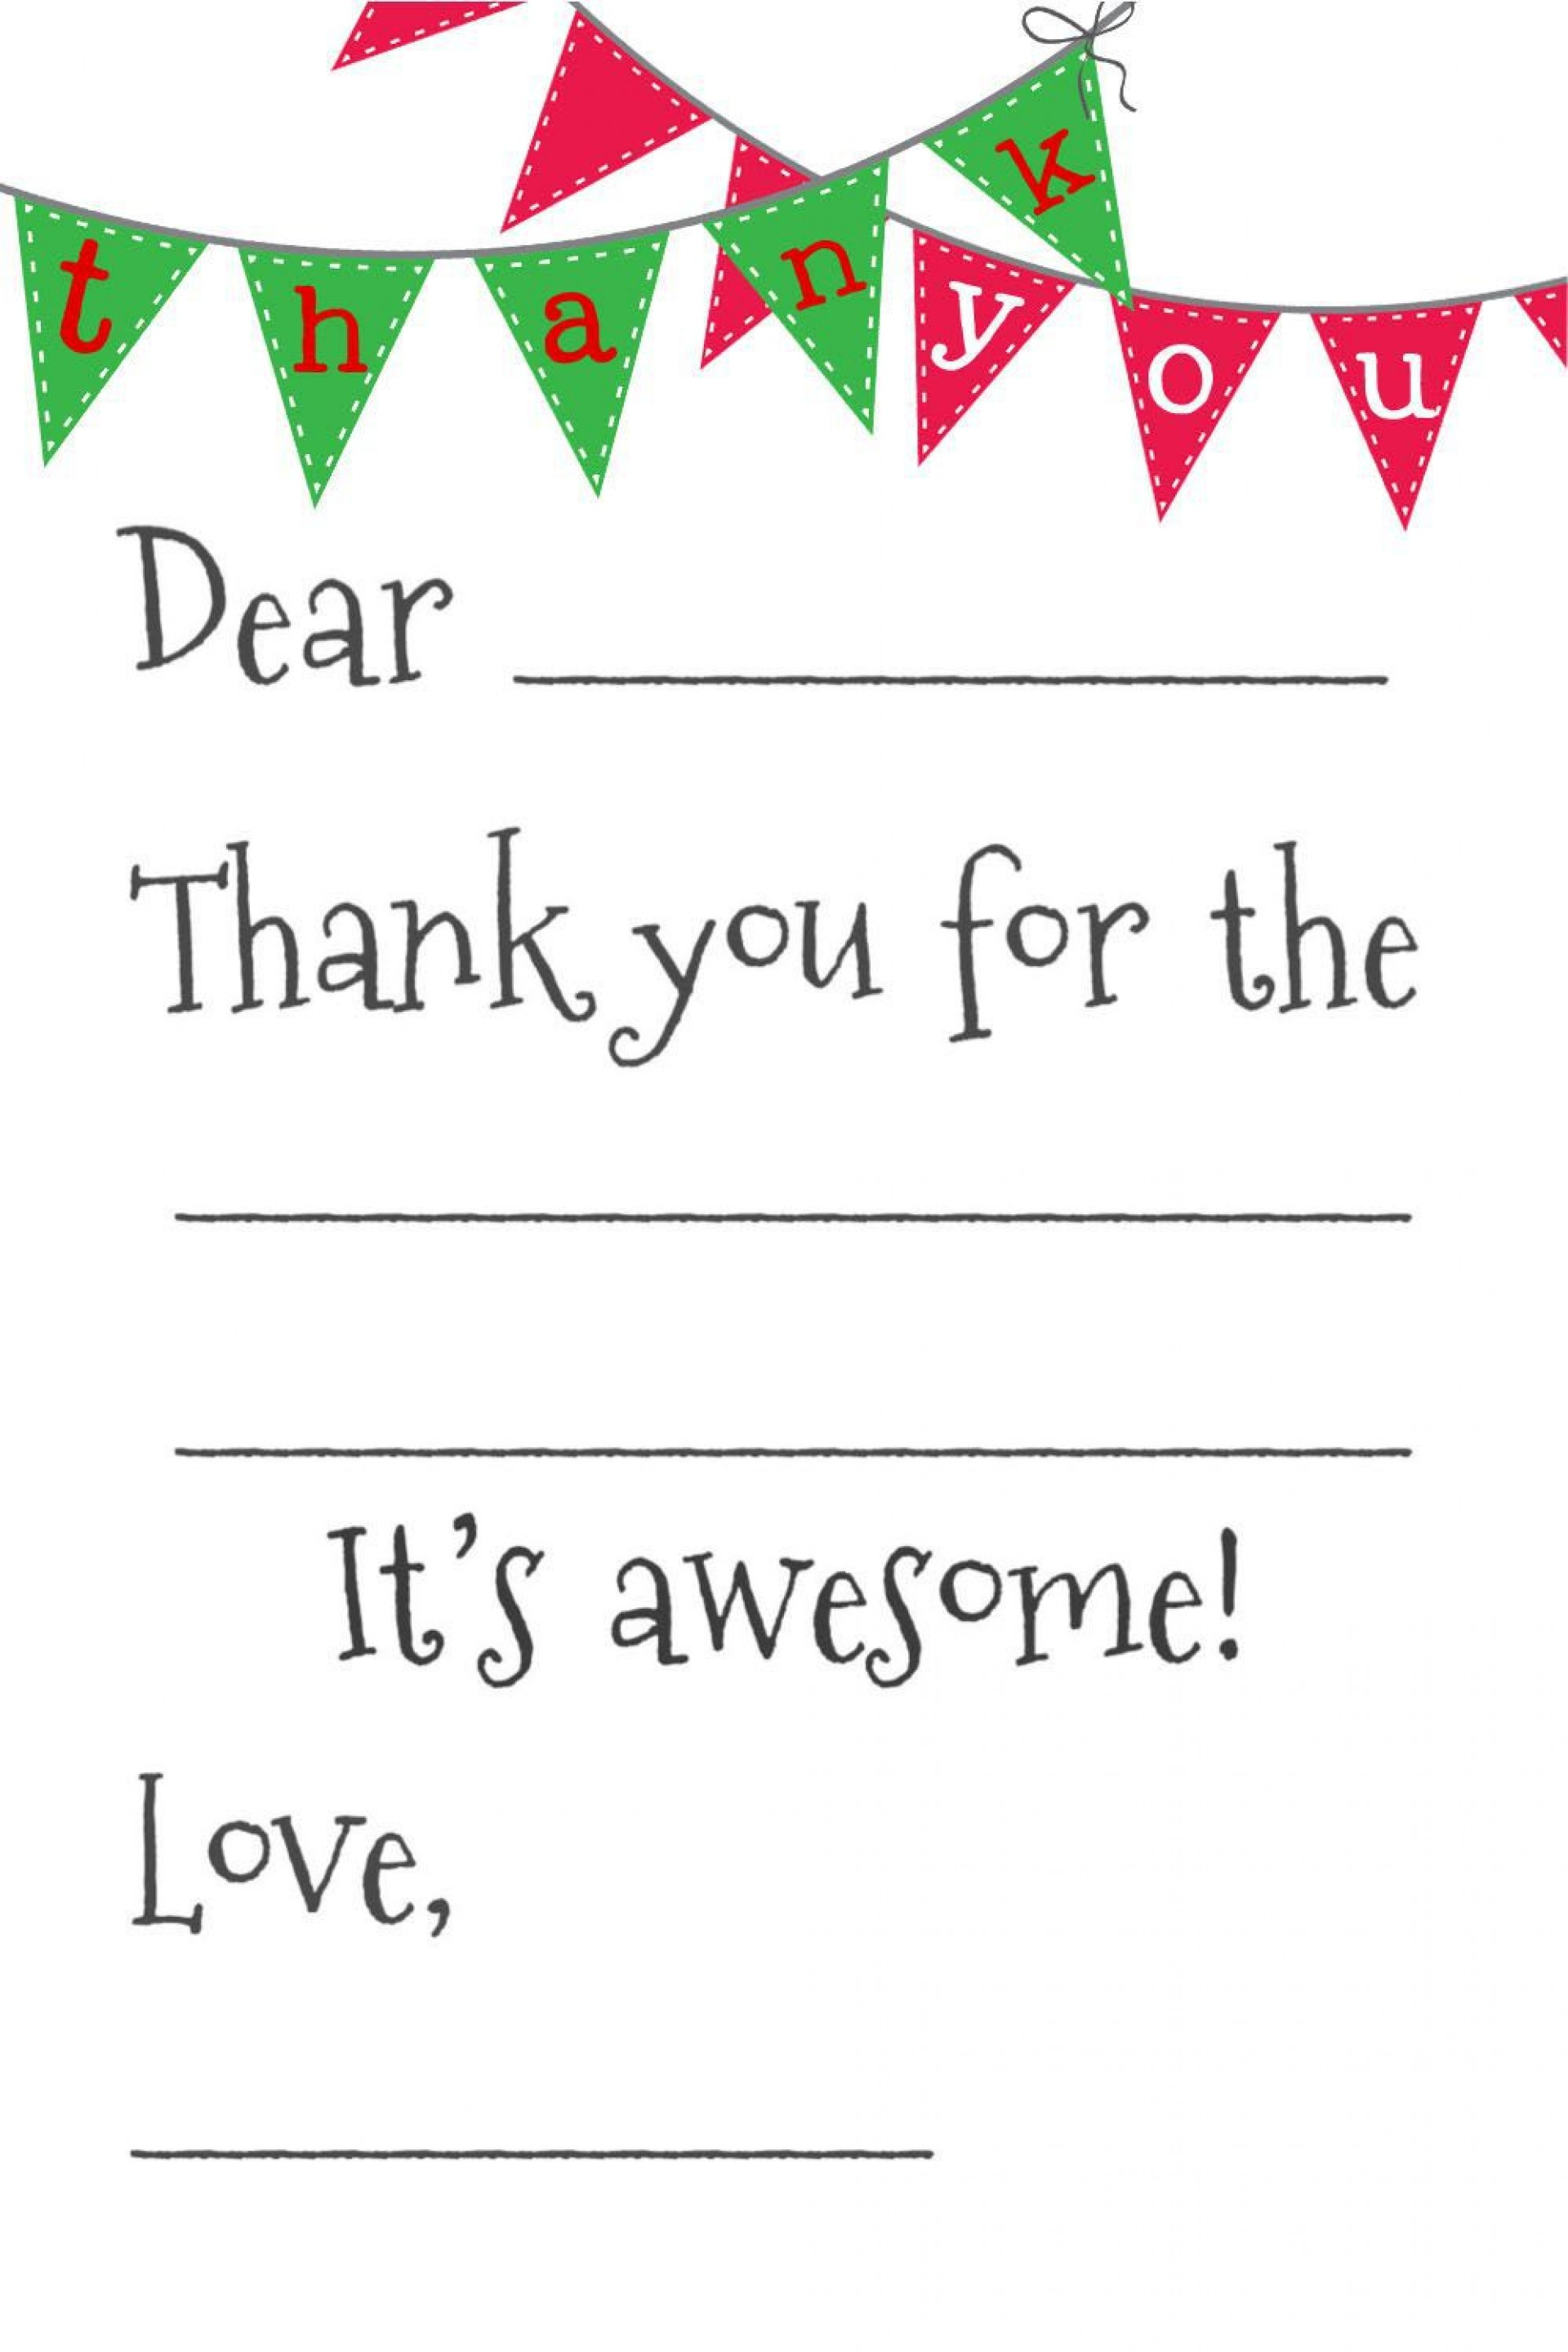 003 Incredible Free Thank You Note Template Word Photo  Card Download1920